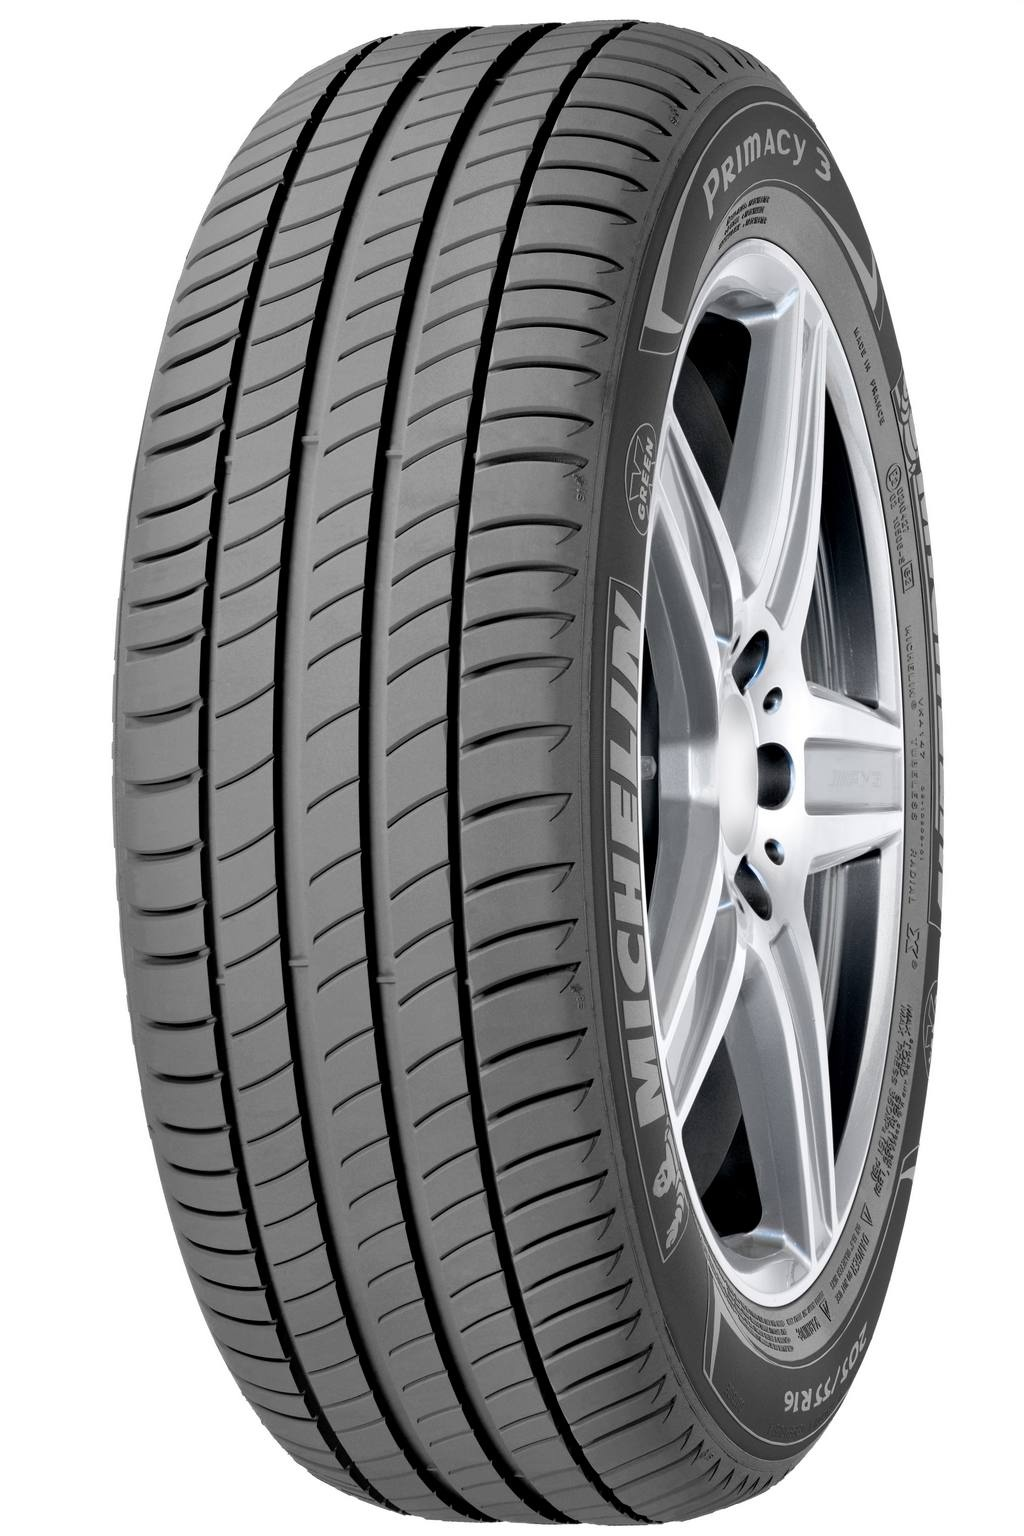 Летняя шина Michelin Primacy 3 275/40 R19 101Y RF S1